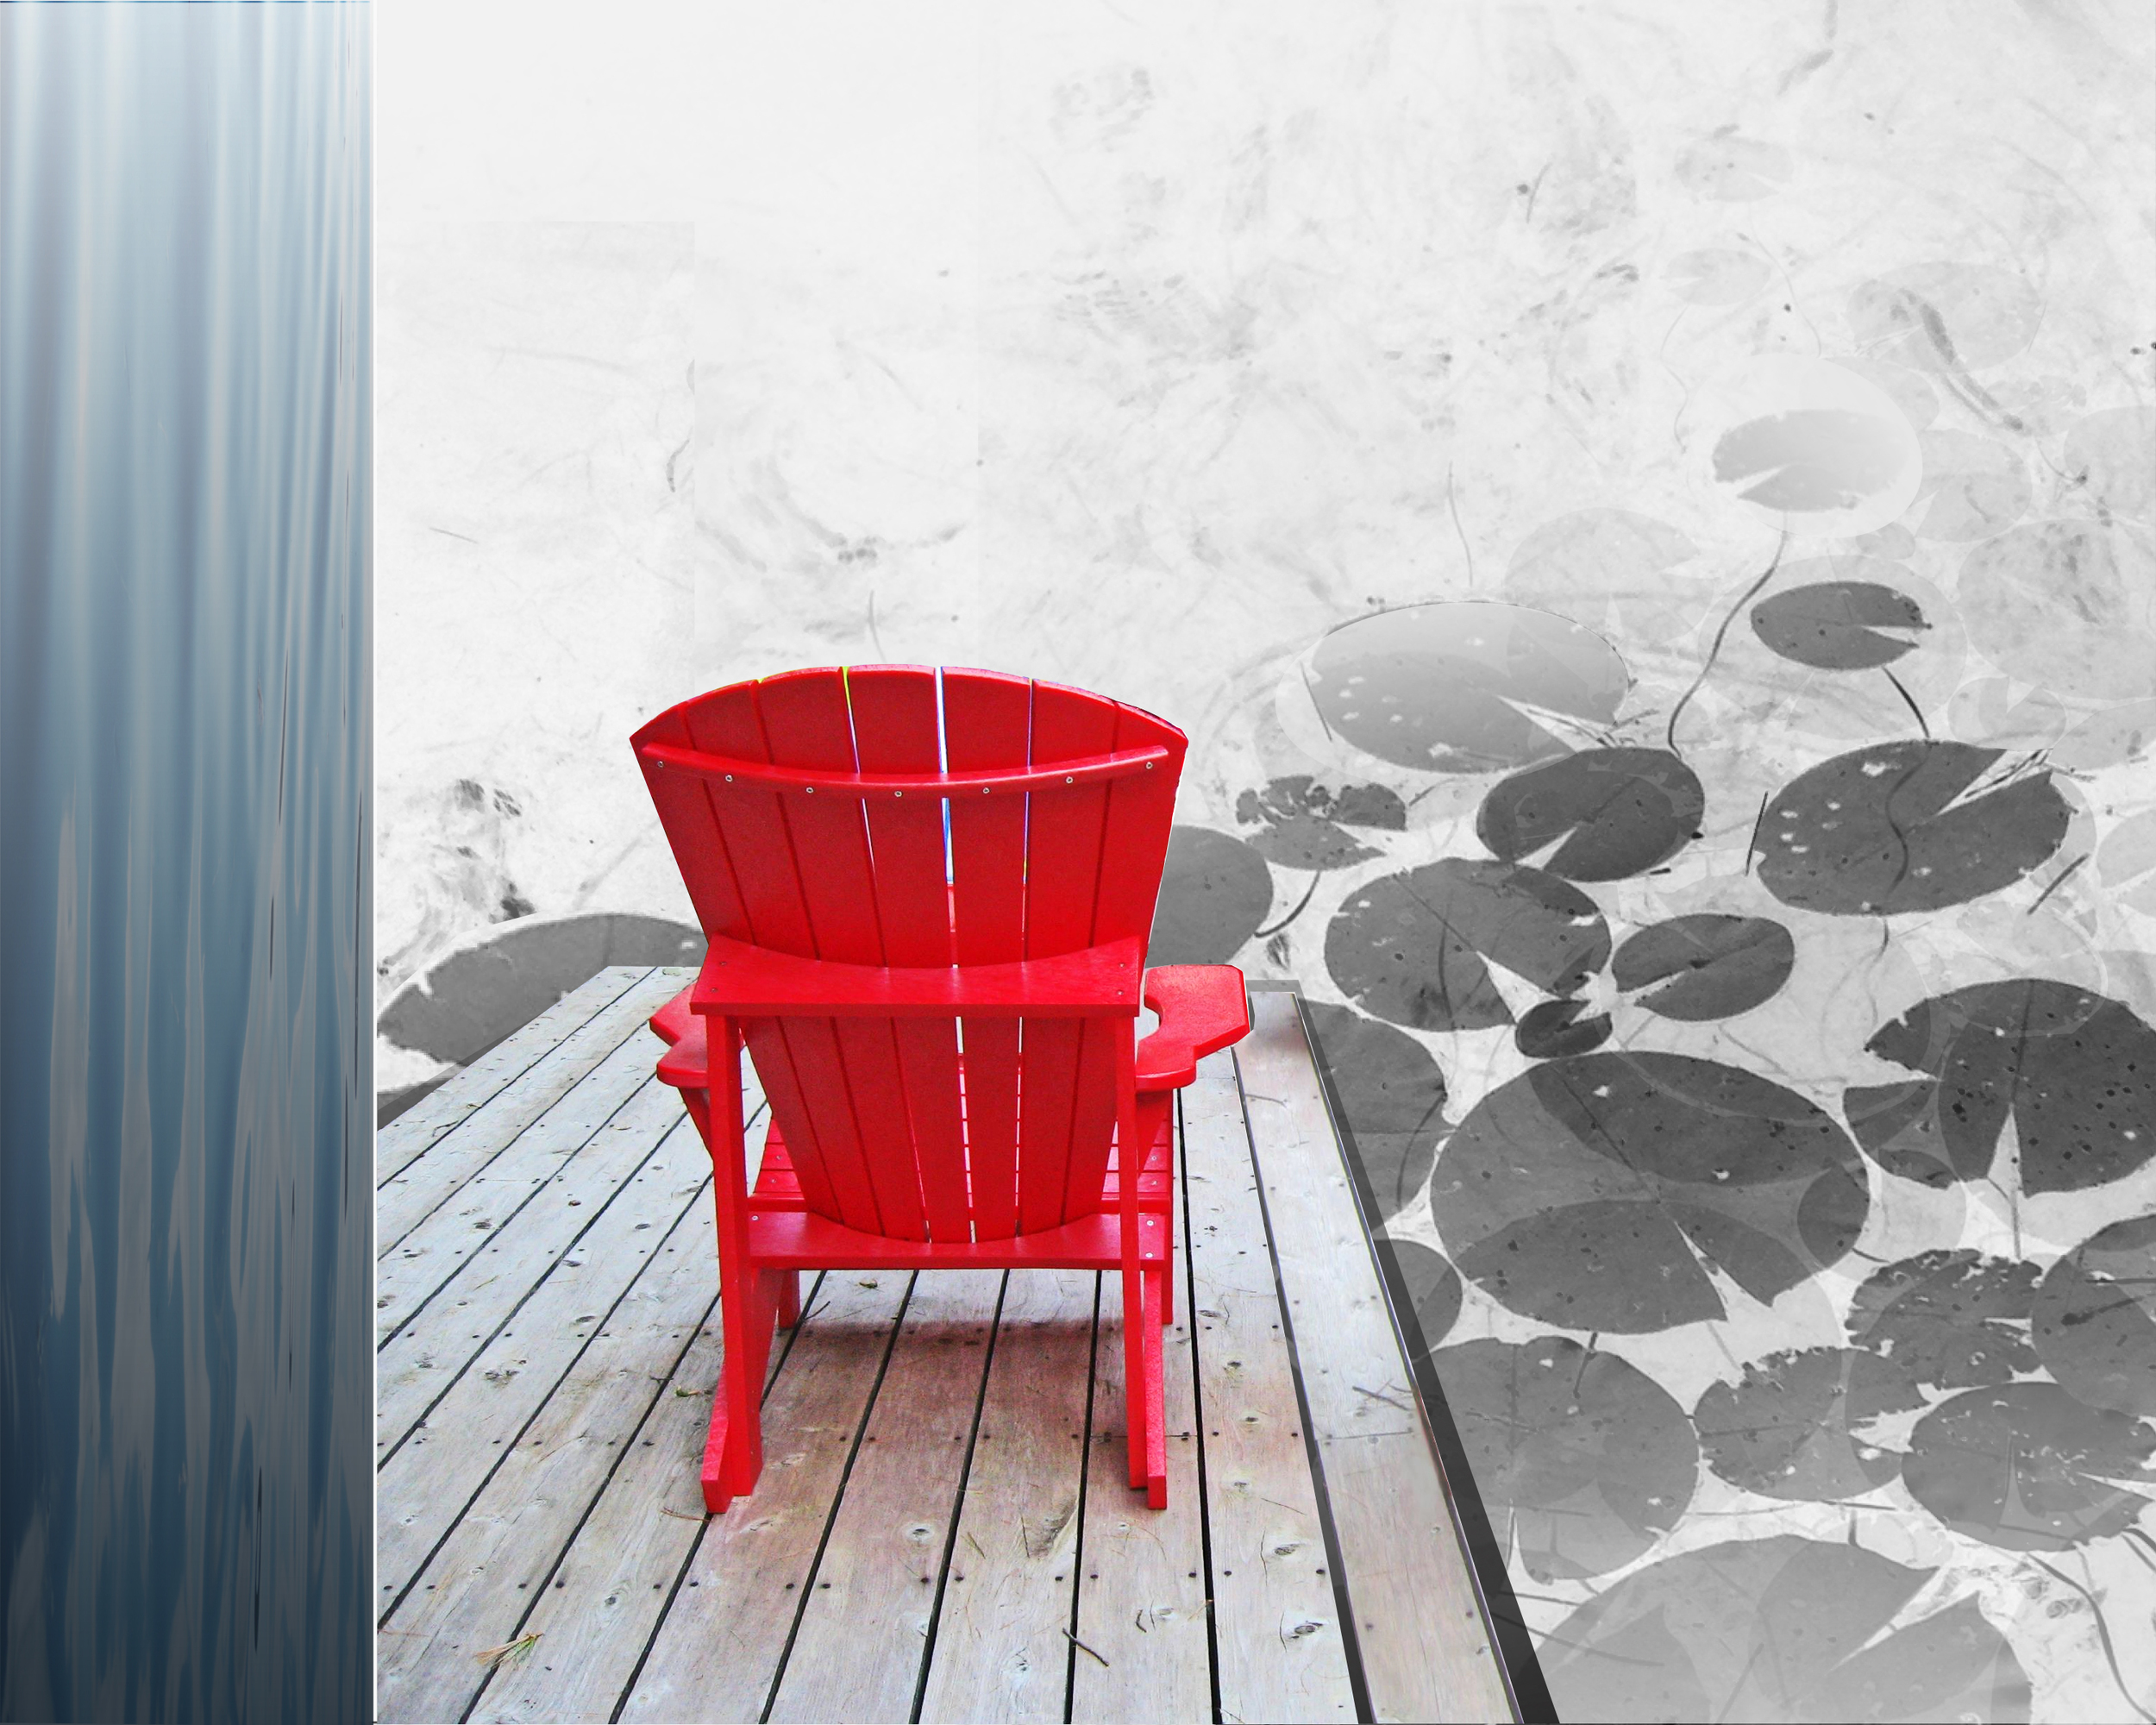 20160406-red-deck-chair-collection-3-jpg - Copy.jpg